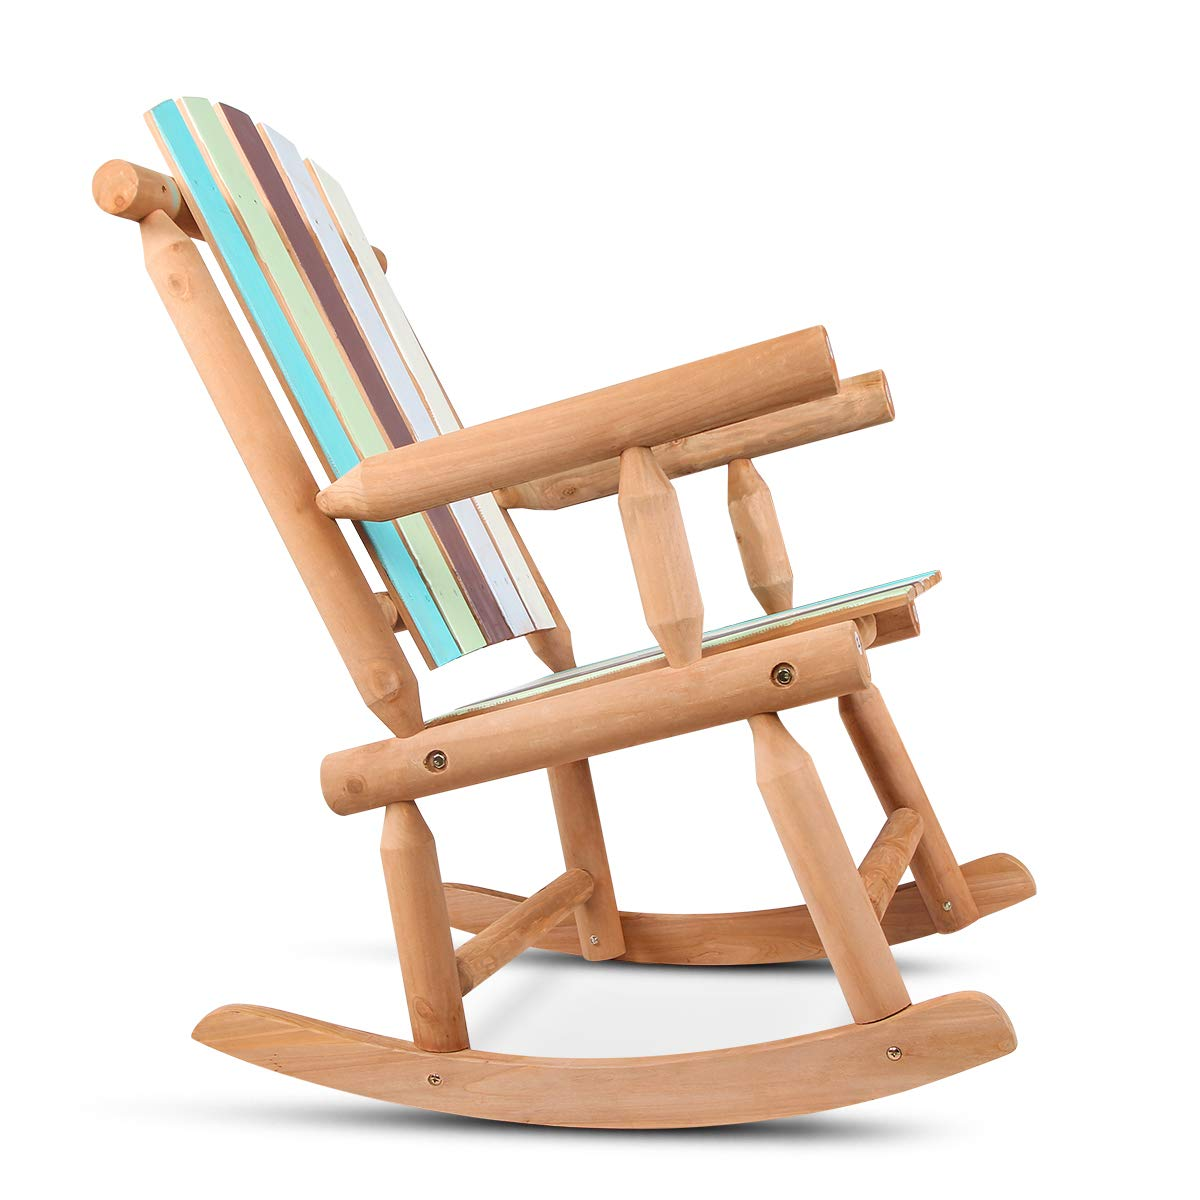 Amazon com vh furniture adirondack rocking chair outdoor wooden rocking chair with colorful painting for patio porch deck garden outdoor